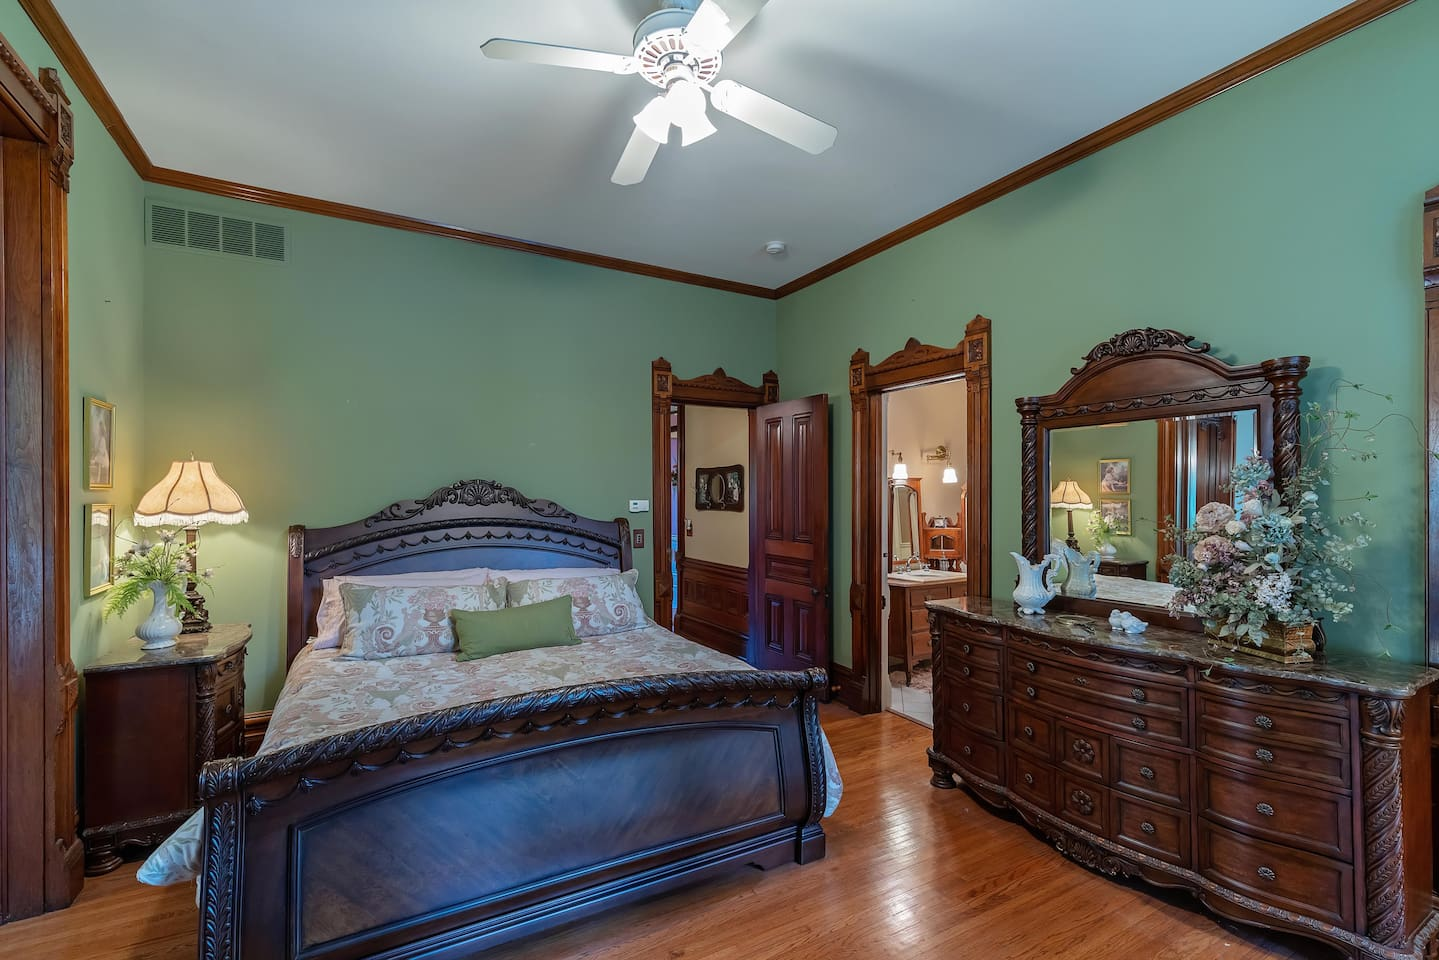 King sleigh bed and private bathroom